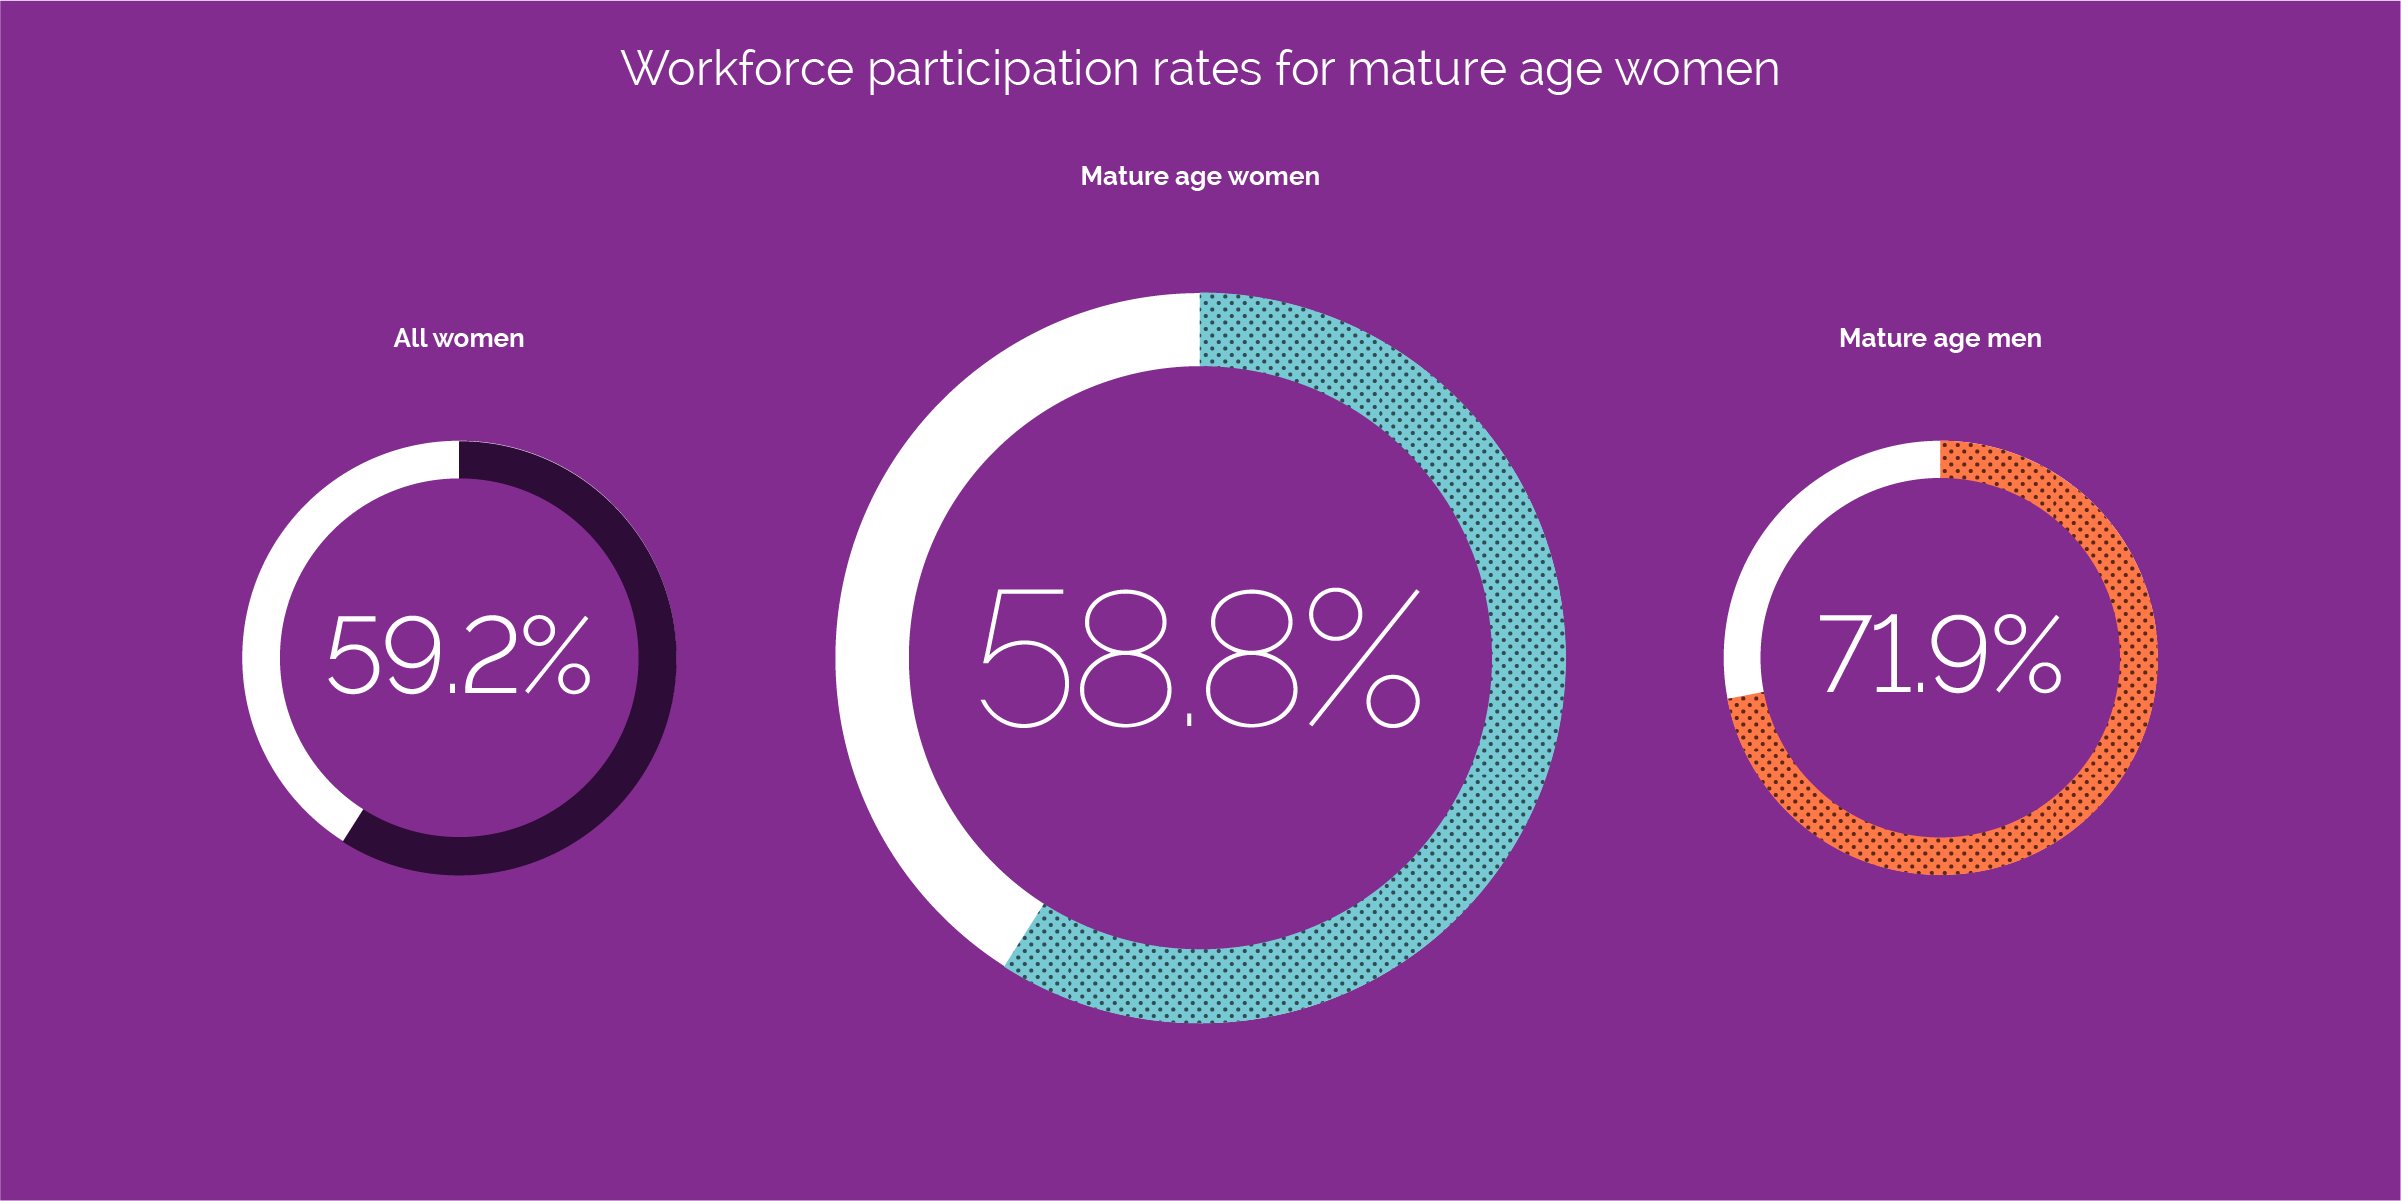 workforce participation rates for mature age women compared with all women